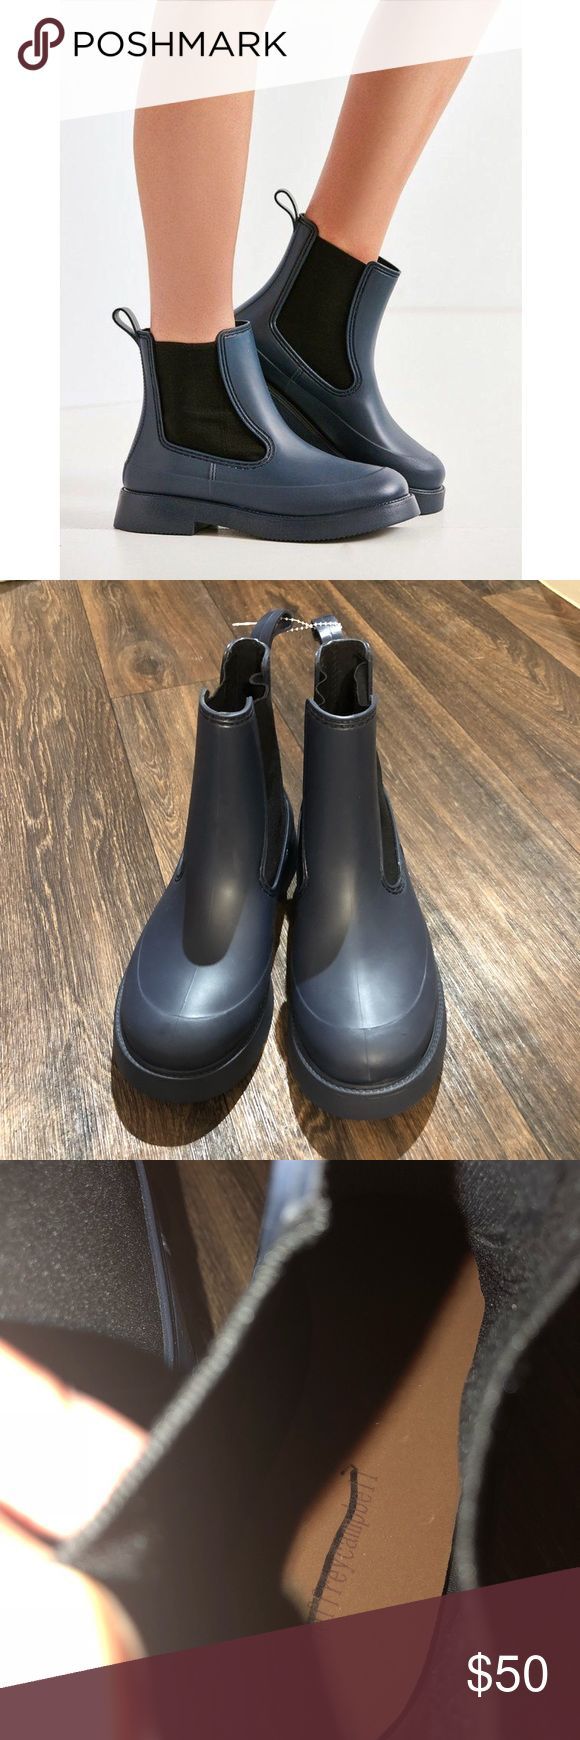 """Jeffrey Campbell El Niño Chelsea rain boot New never been used. Minor scuffing from store / being tried on. Size 7. A classic Chelsea profile, oversized goring panels and a grippy ridged sole define a durable rain boot outfitted with a cushioned footbed and roomy round toe. 1 1/4"""" heel 6"""" shaft Pull-on style Cushioned footbed Synthetic upper, lining and sole Jeffrey Campbell Shoes Winter & Rain Boots"""